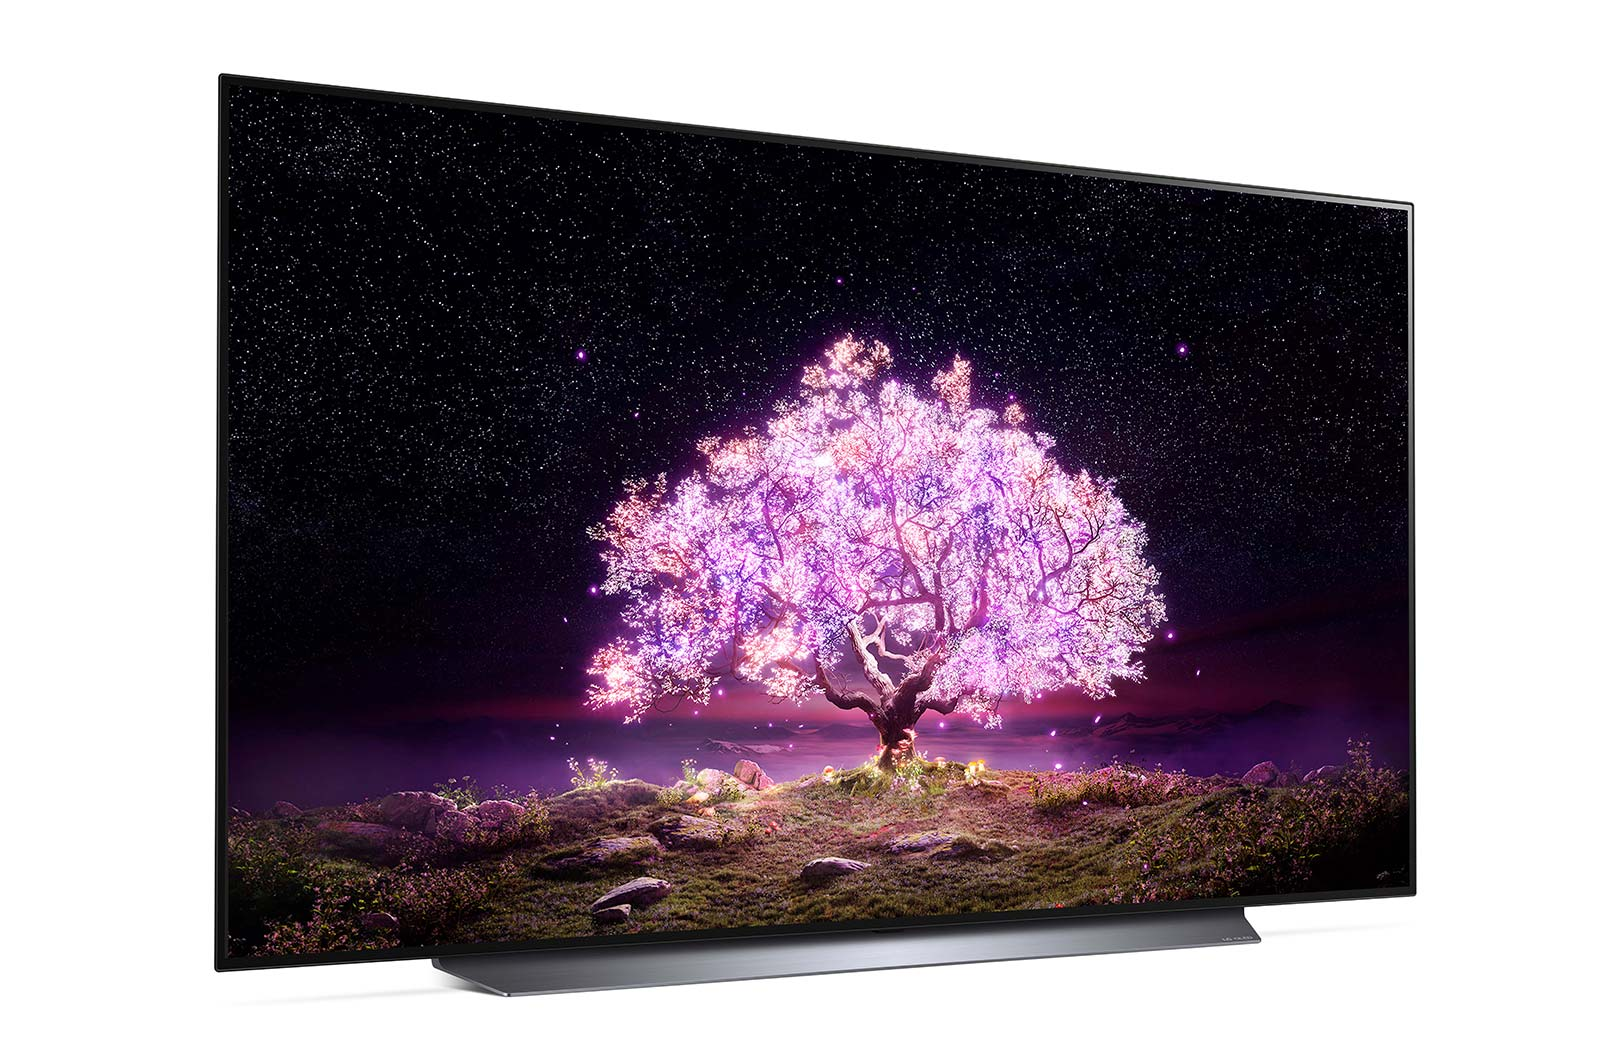 LG's C1 OLED TV, which won't feature the OLED Evo panel.